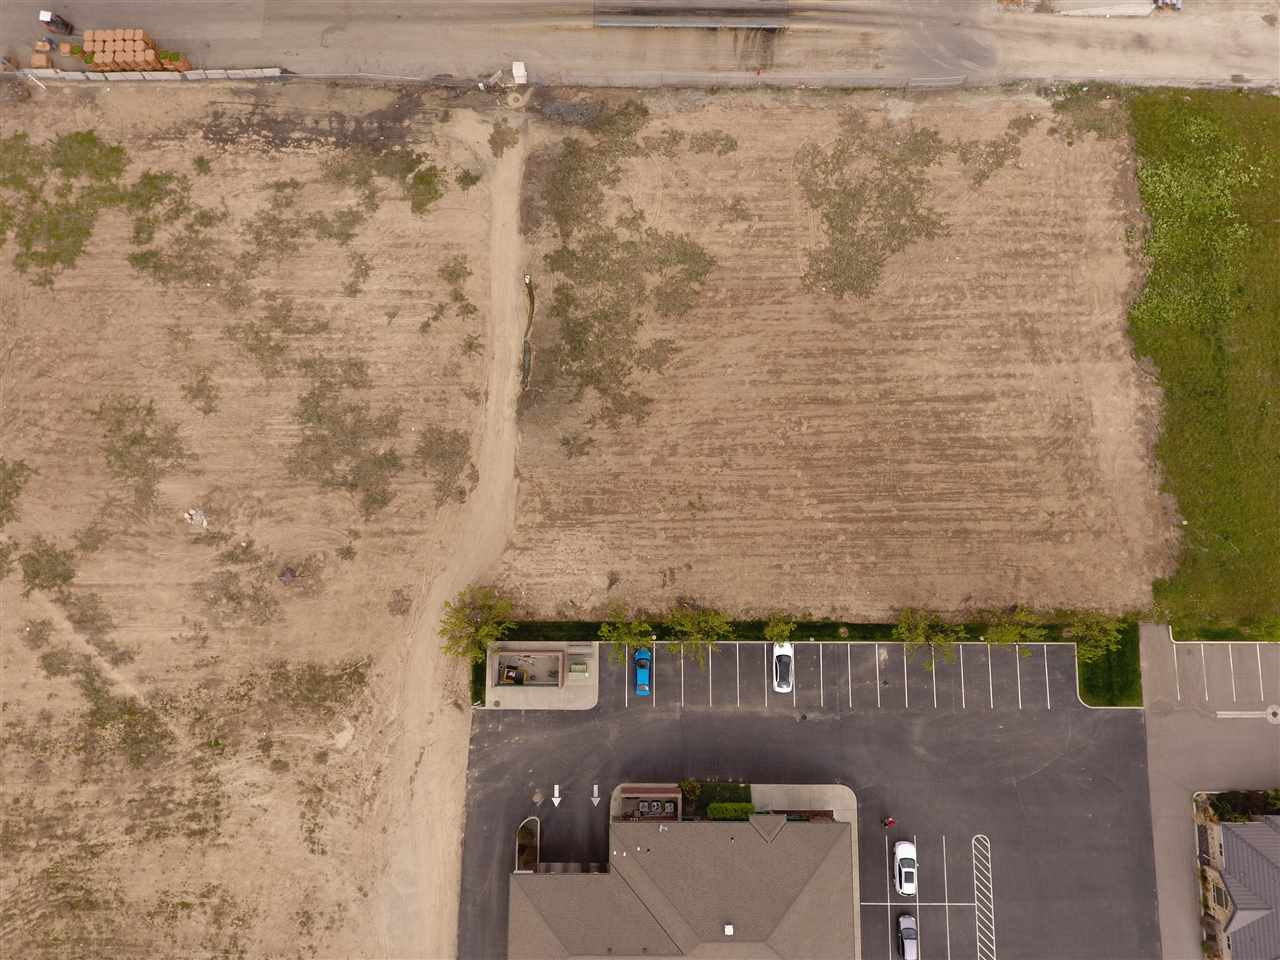 Land for Sale at Tbd N Whitley - Lot 6 Fruitland, Idaho 83619